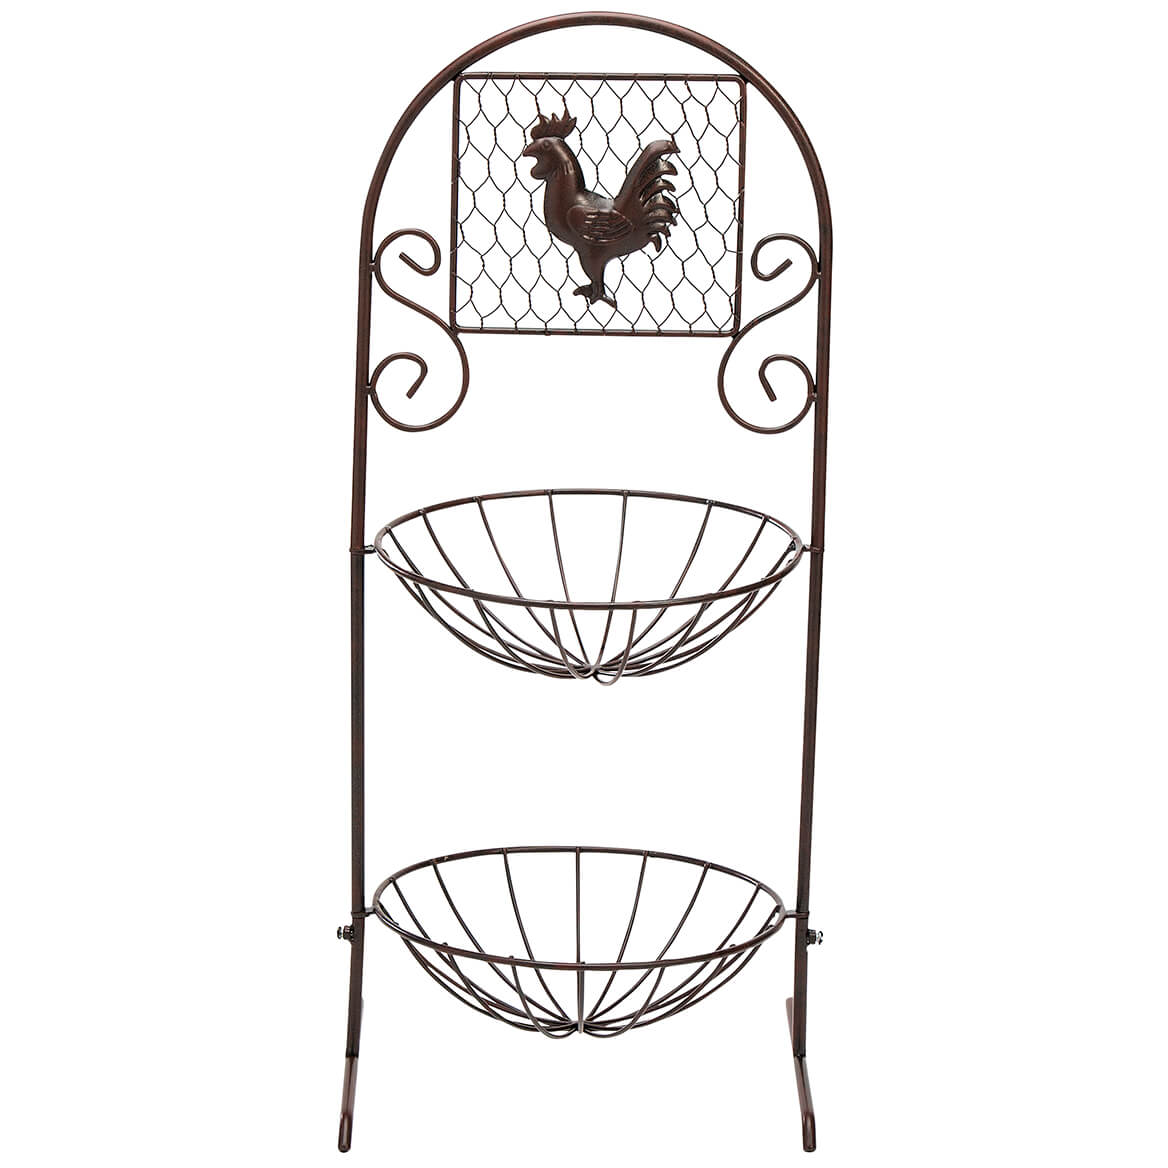 2-Tier Rooster Stand-368072